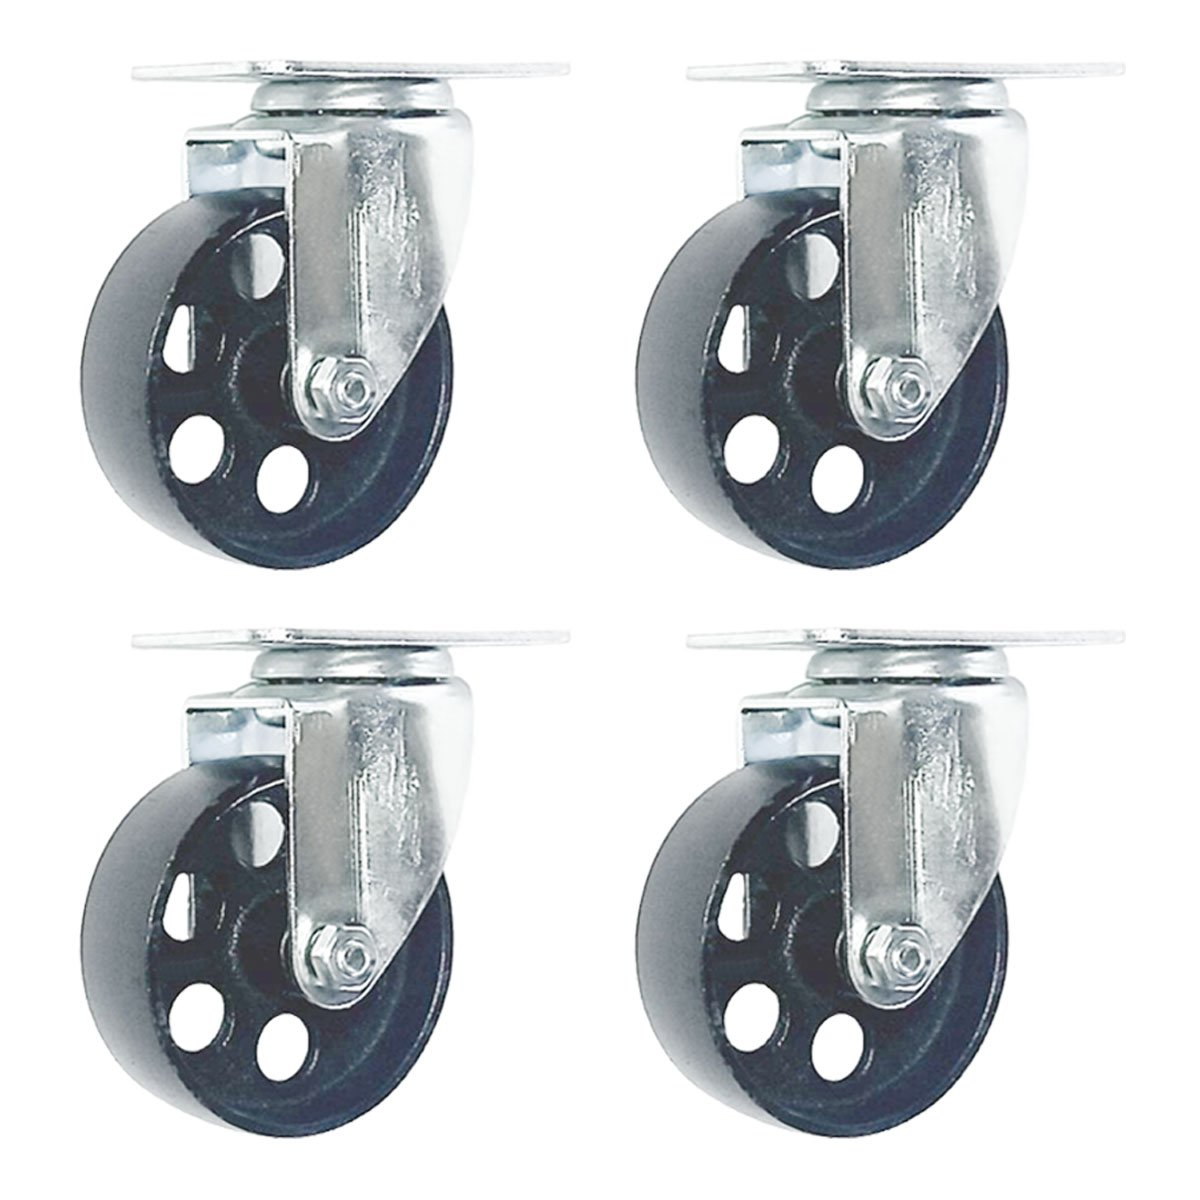 4 Pack Large Steel Swivel Caster Wheel Heavy Duty 3.5 Wheel 3.5 No Brake